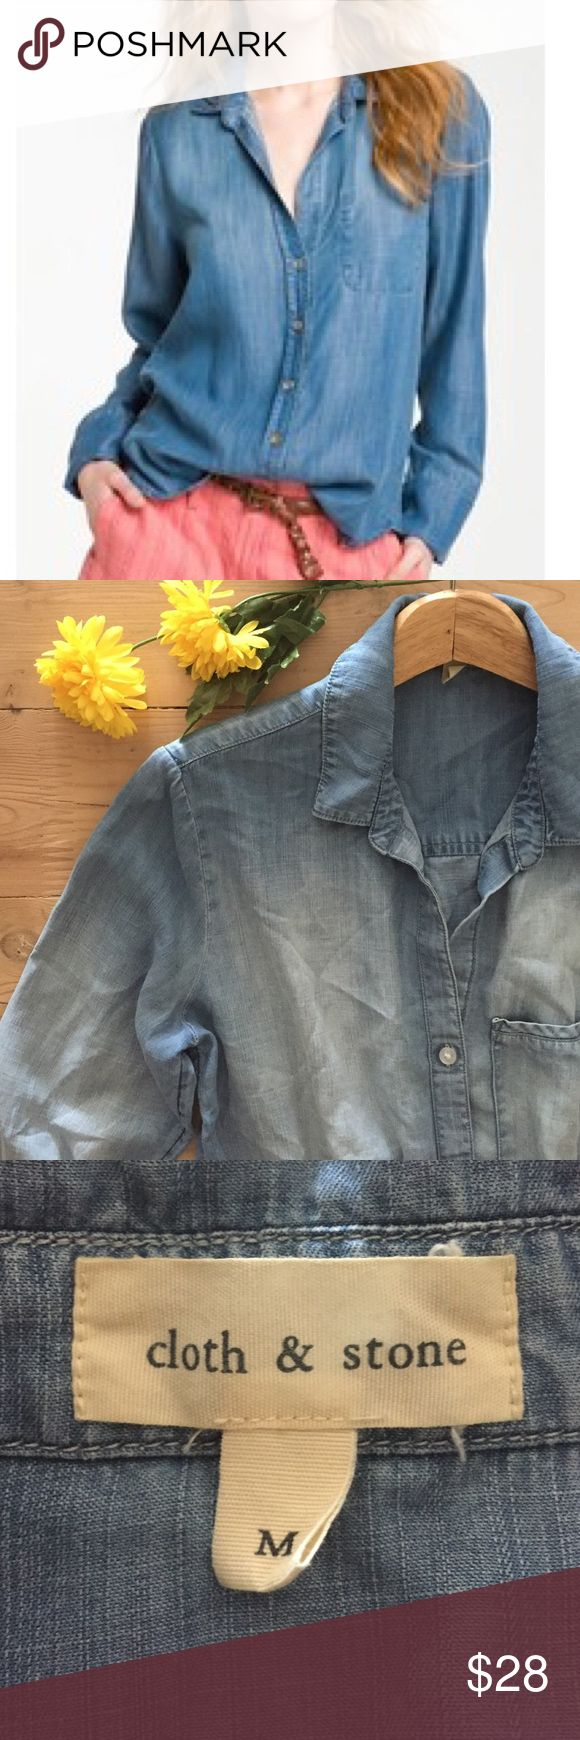 Anthropologie Cloth & Stone Chambray Top High quality, super soft distressed blue chambray button down shirt.  Drapes beautifully.  In excellent, gently used condition. Anthropologie Tops Button Down Shirts